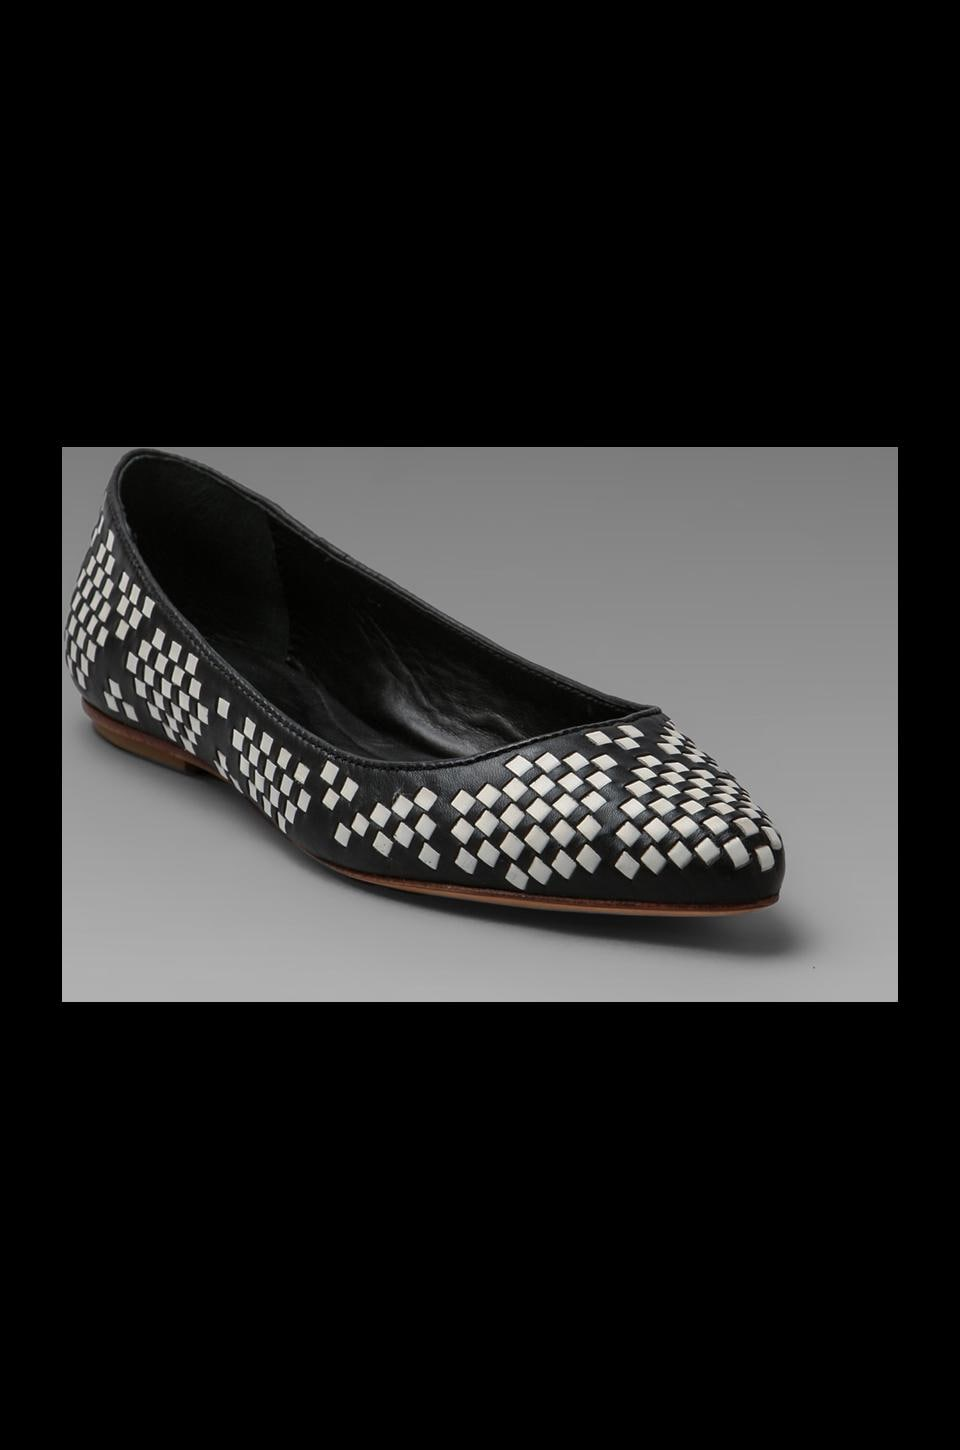 Rebecca Minkoff Idelle Flat in Black/White